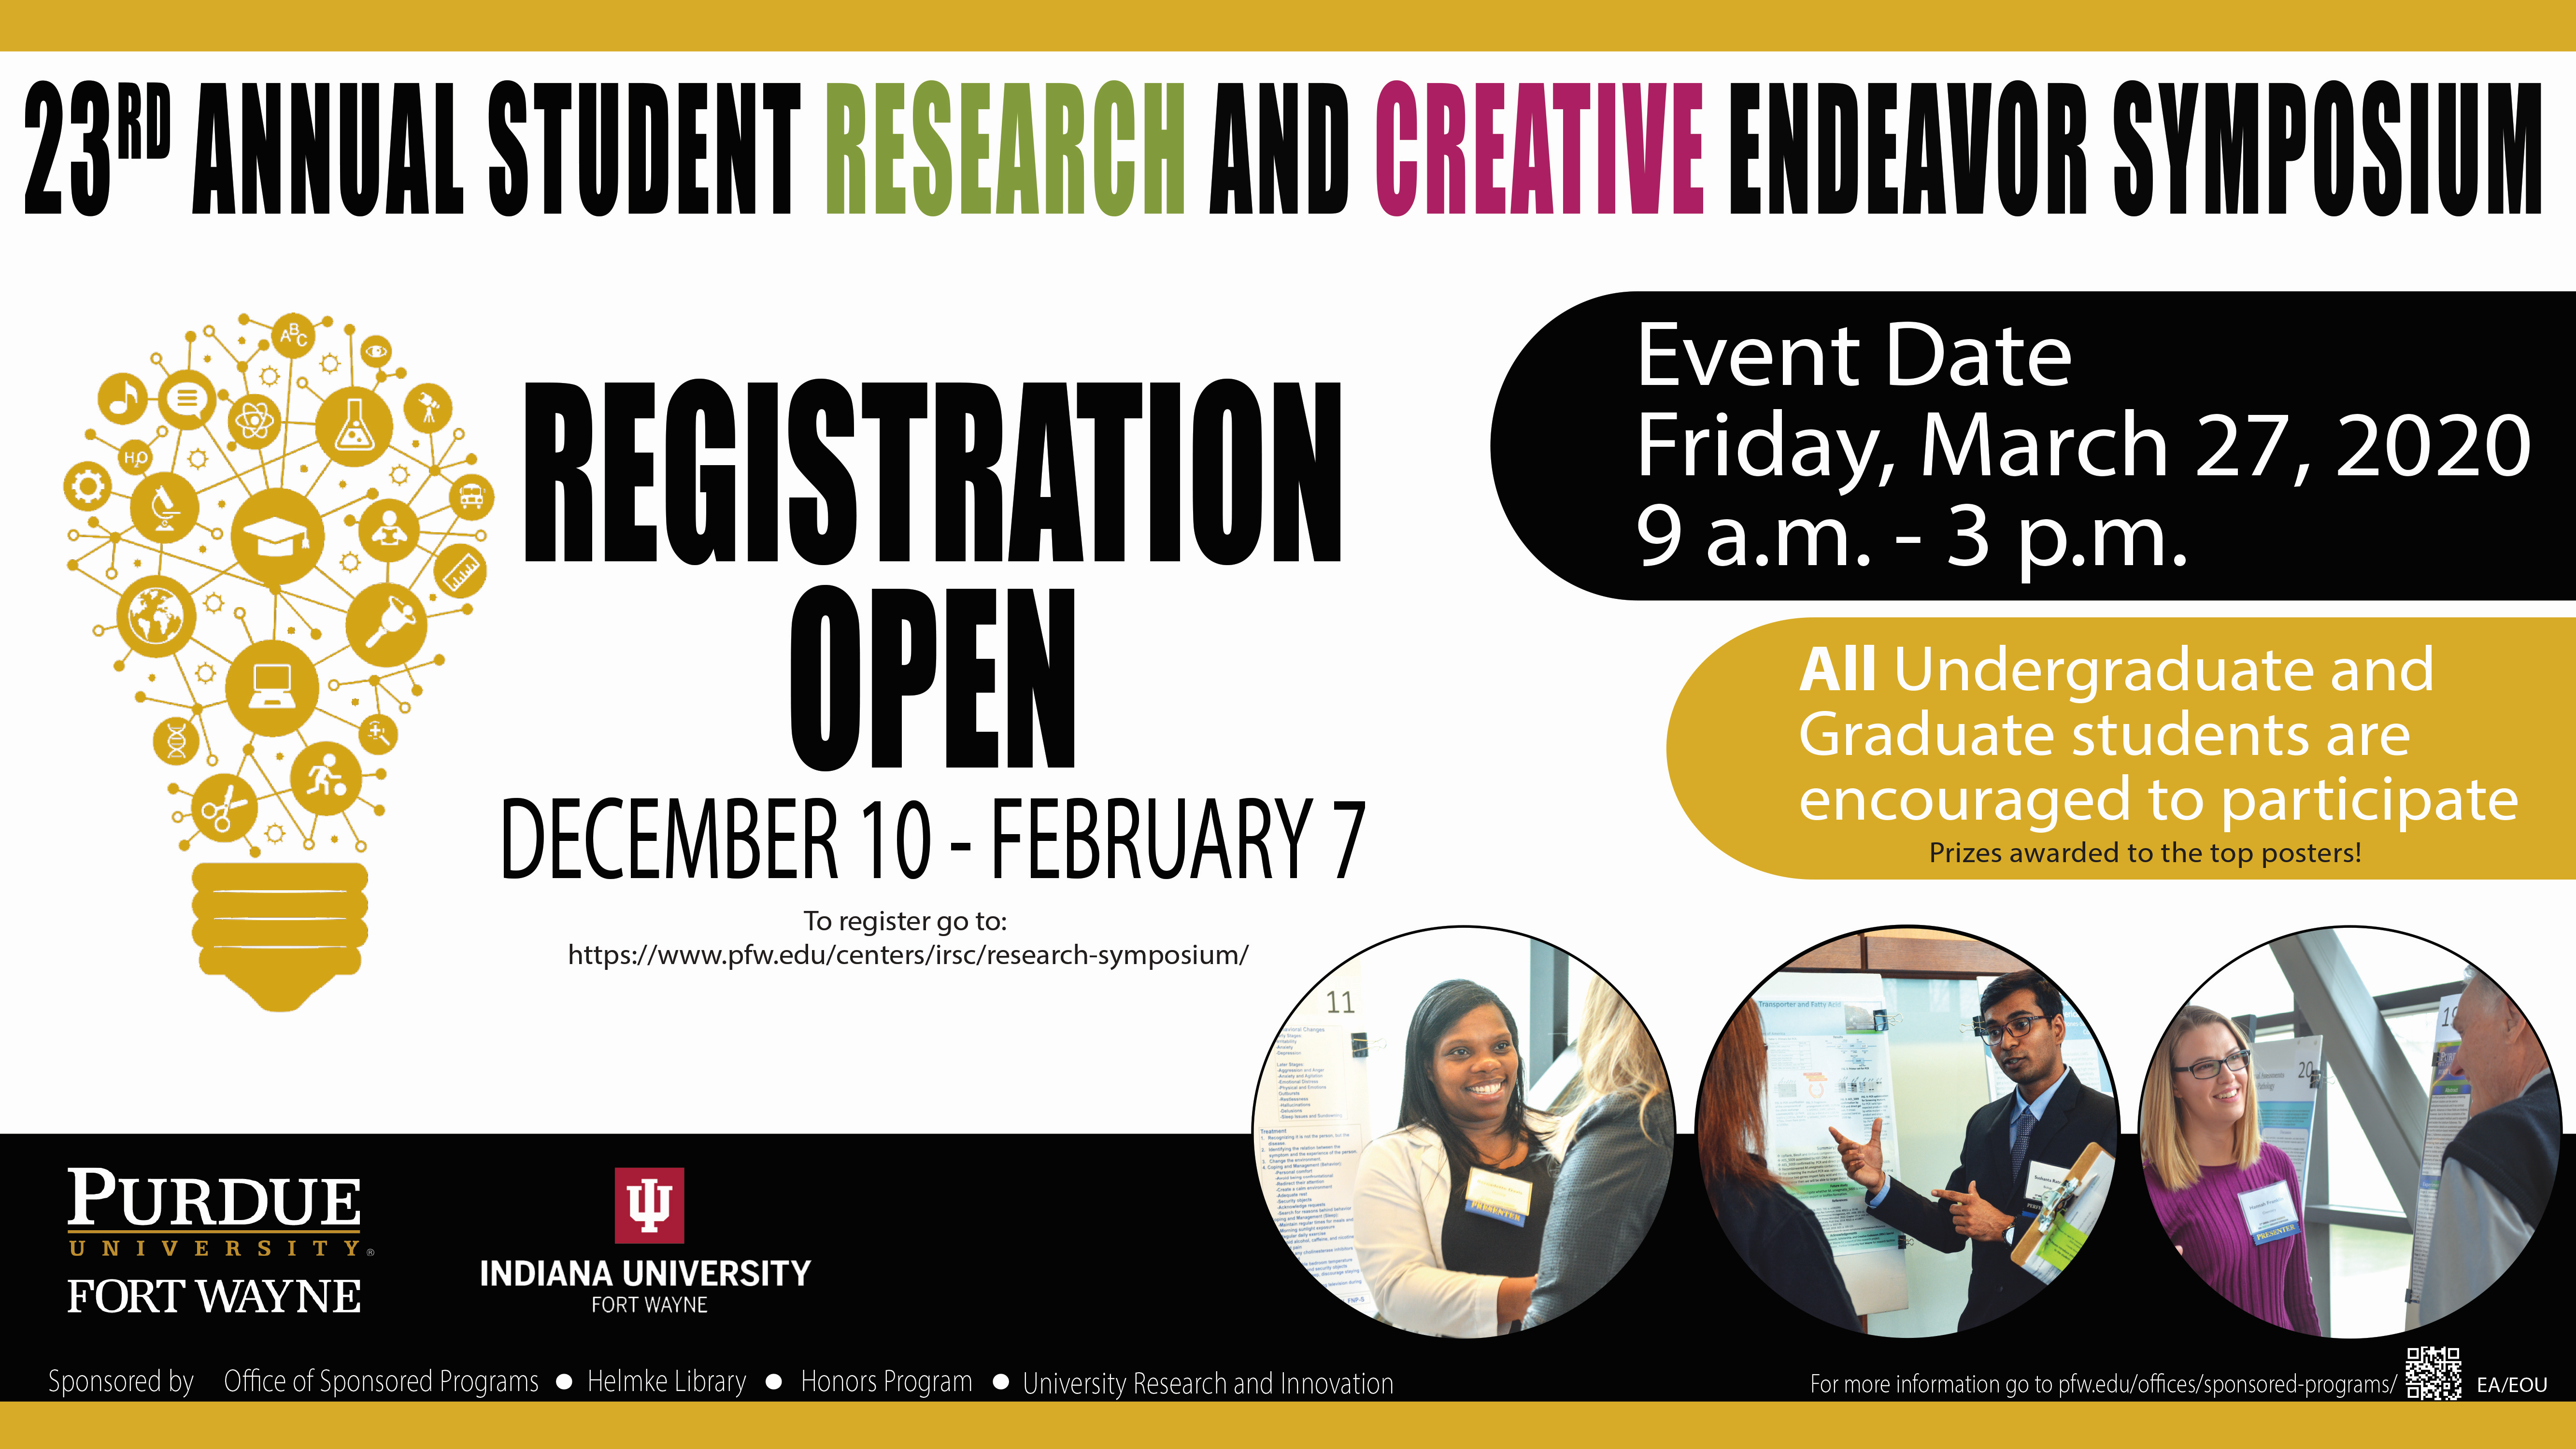 February 7th Registration Deadline for Student Research Symposium